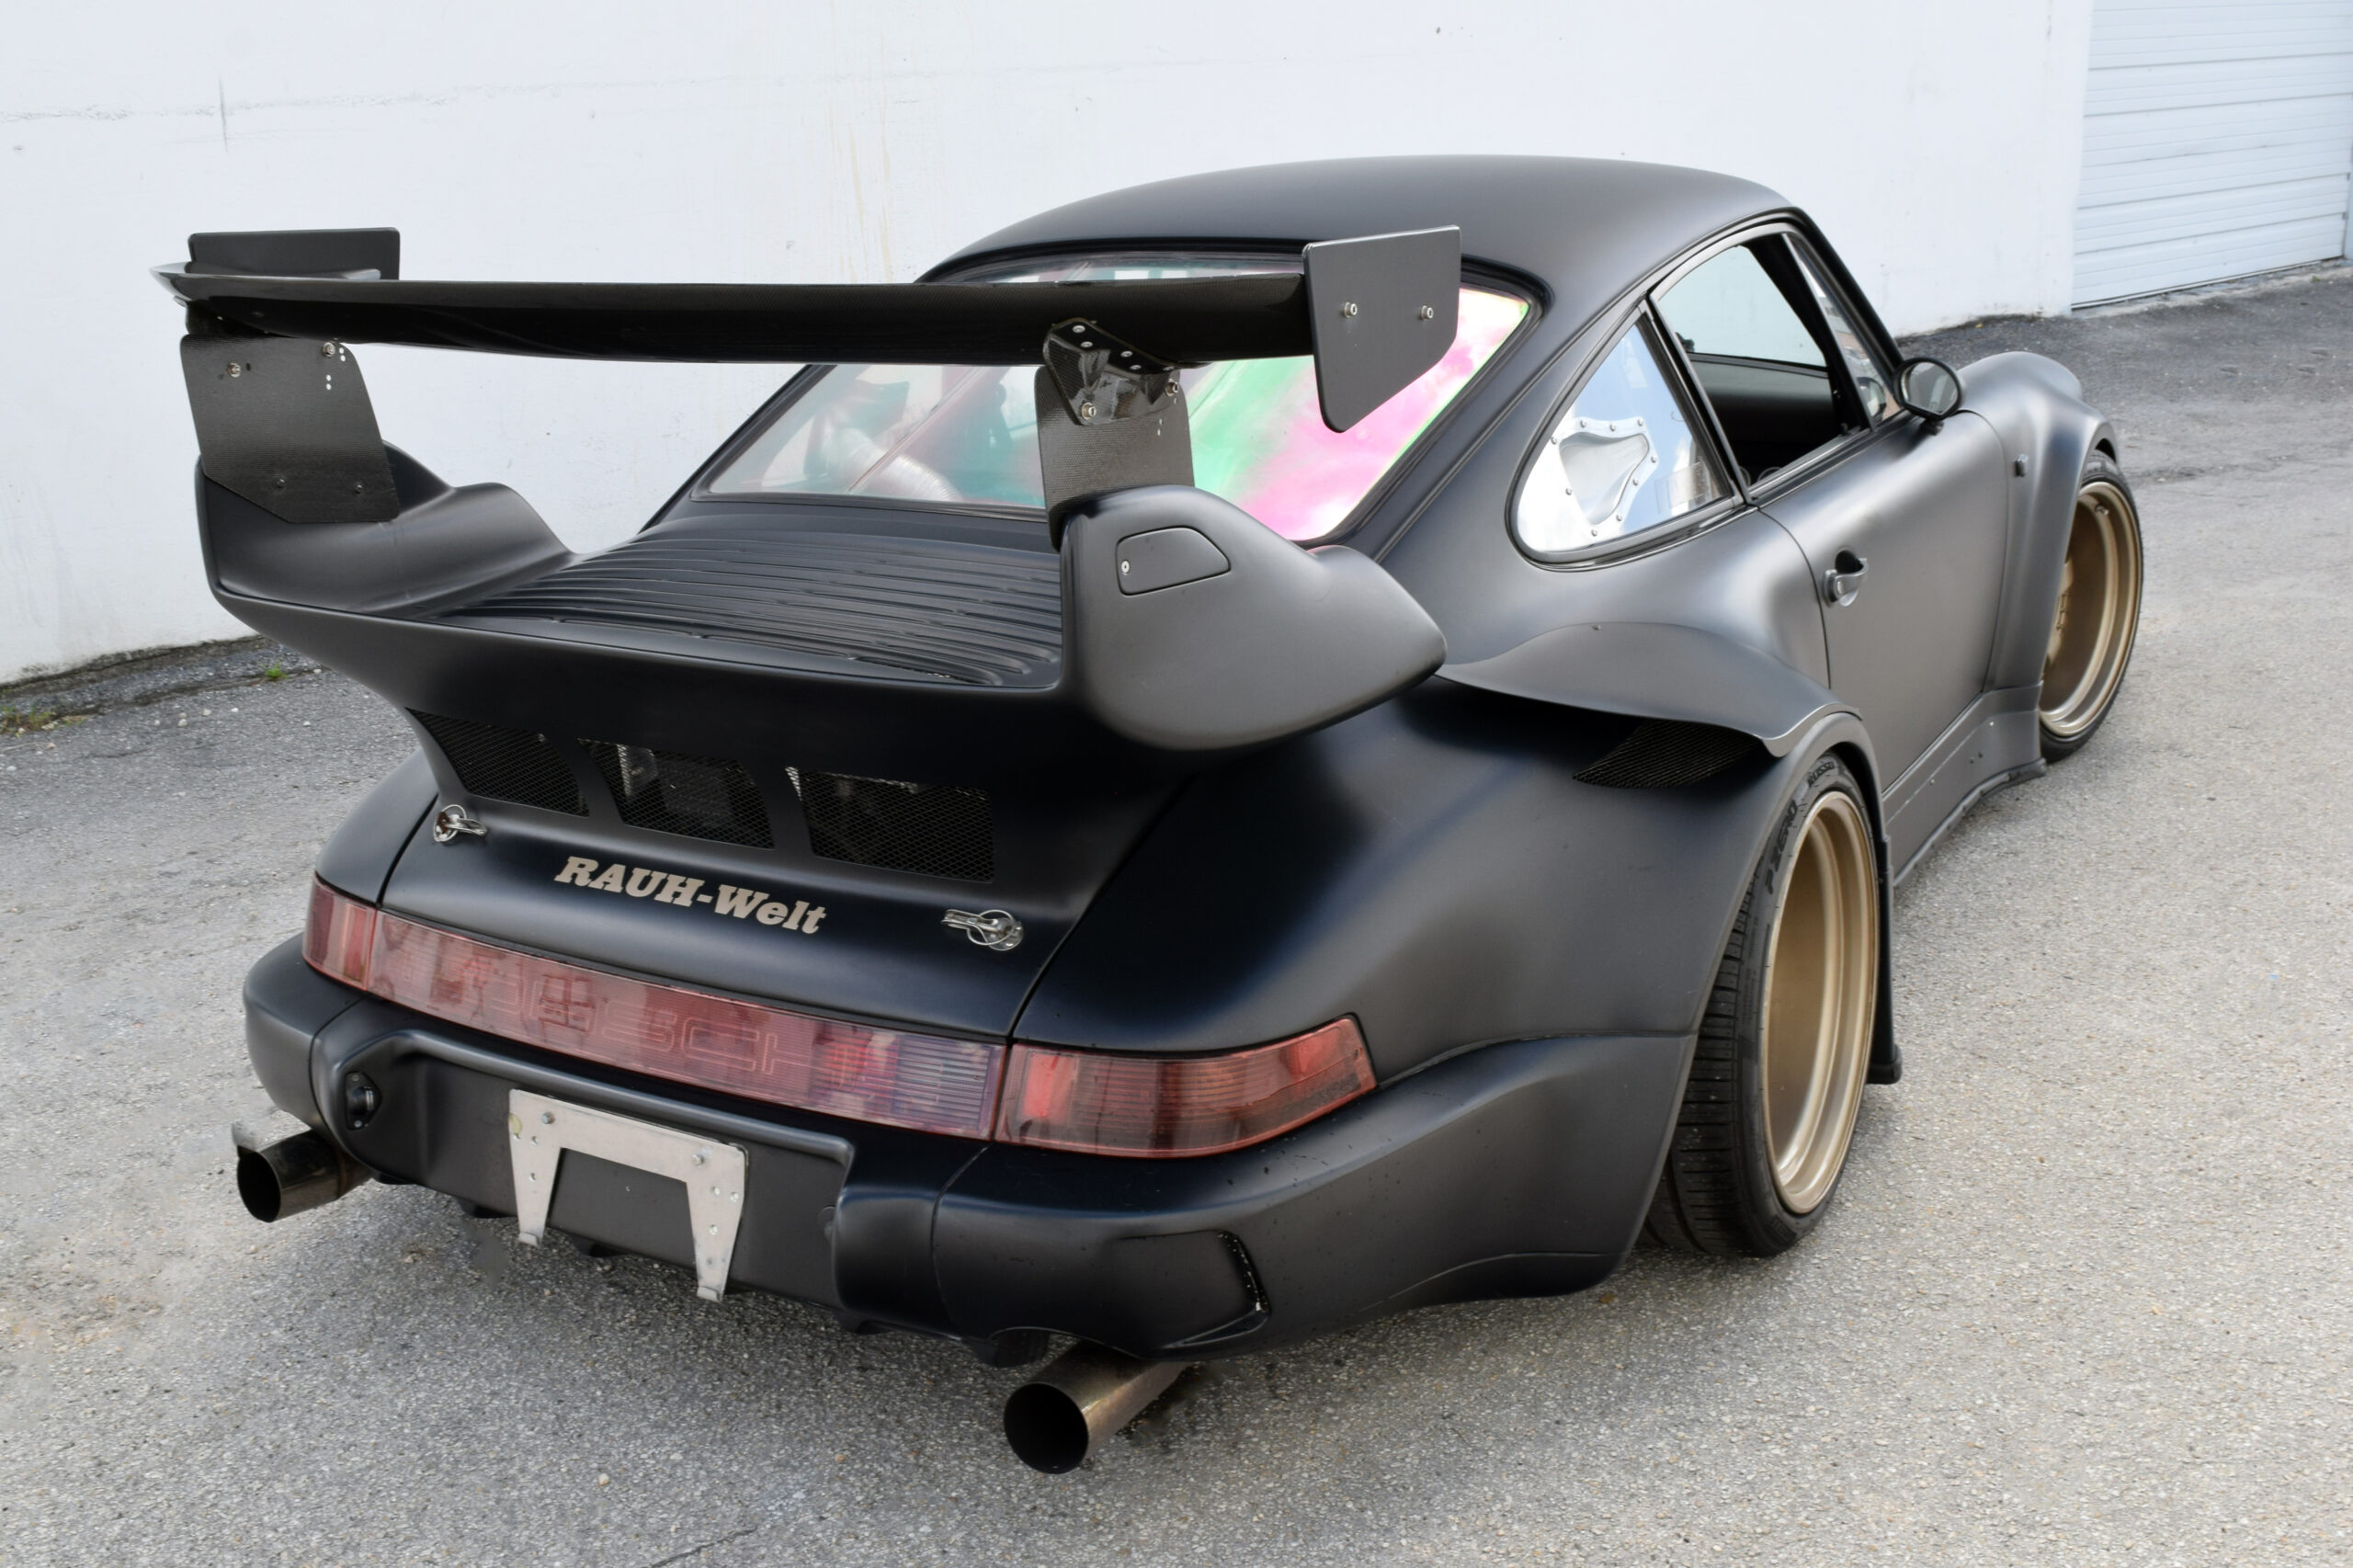 1993 Porsche  964 Carrera 2 RWB twin plug Turbo, Made in Japan, Smoothie, Certified authentic, Work wheels, low miles